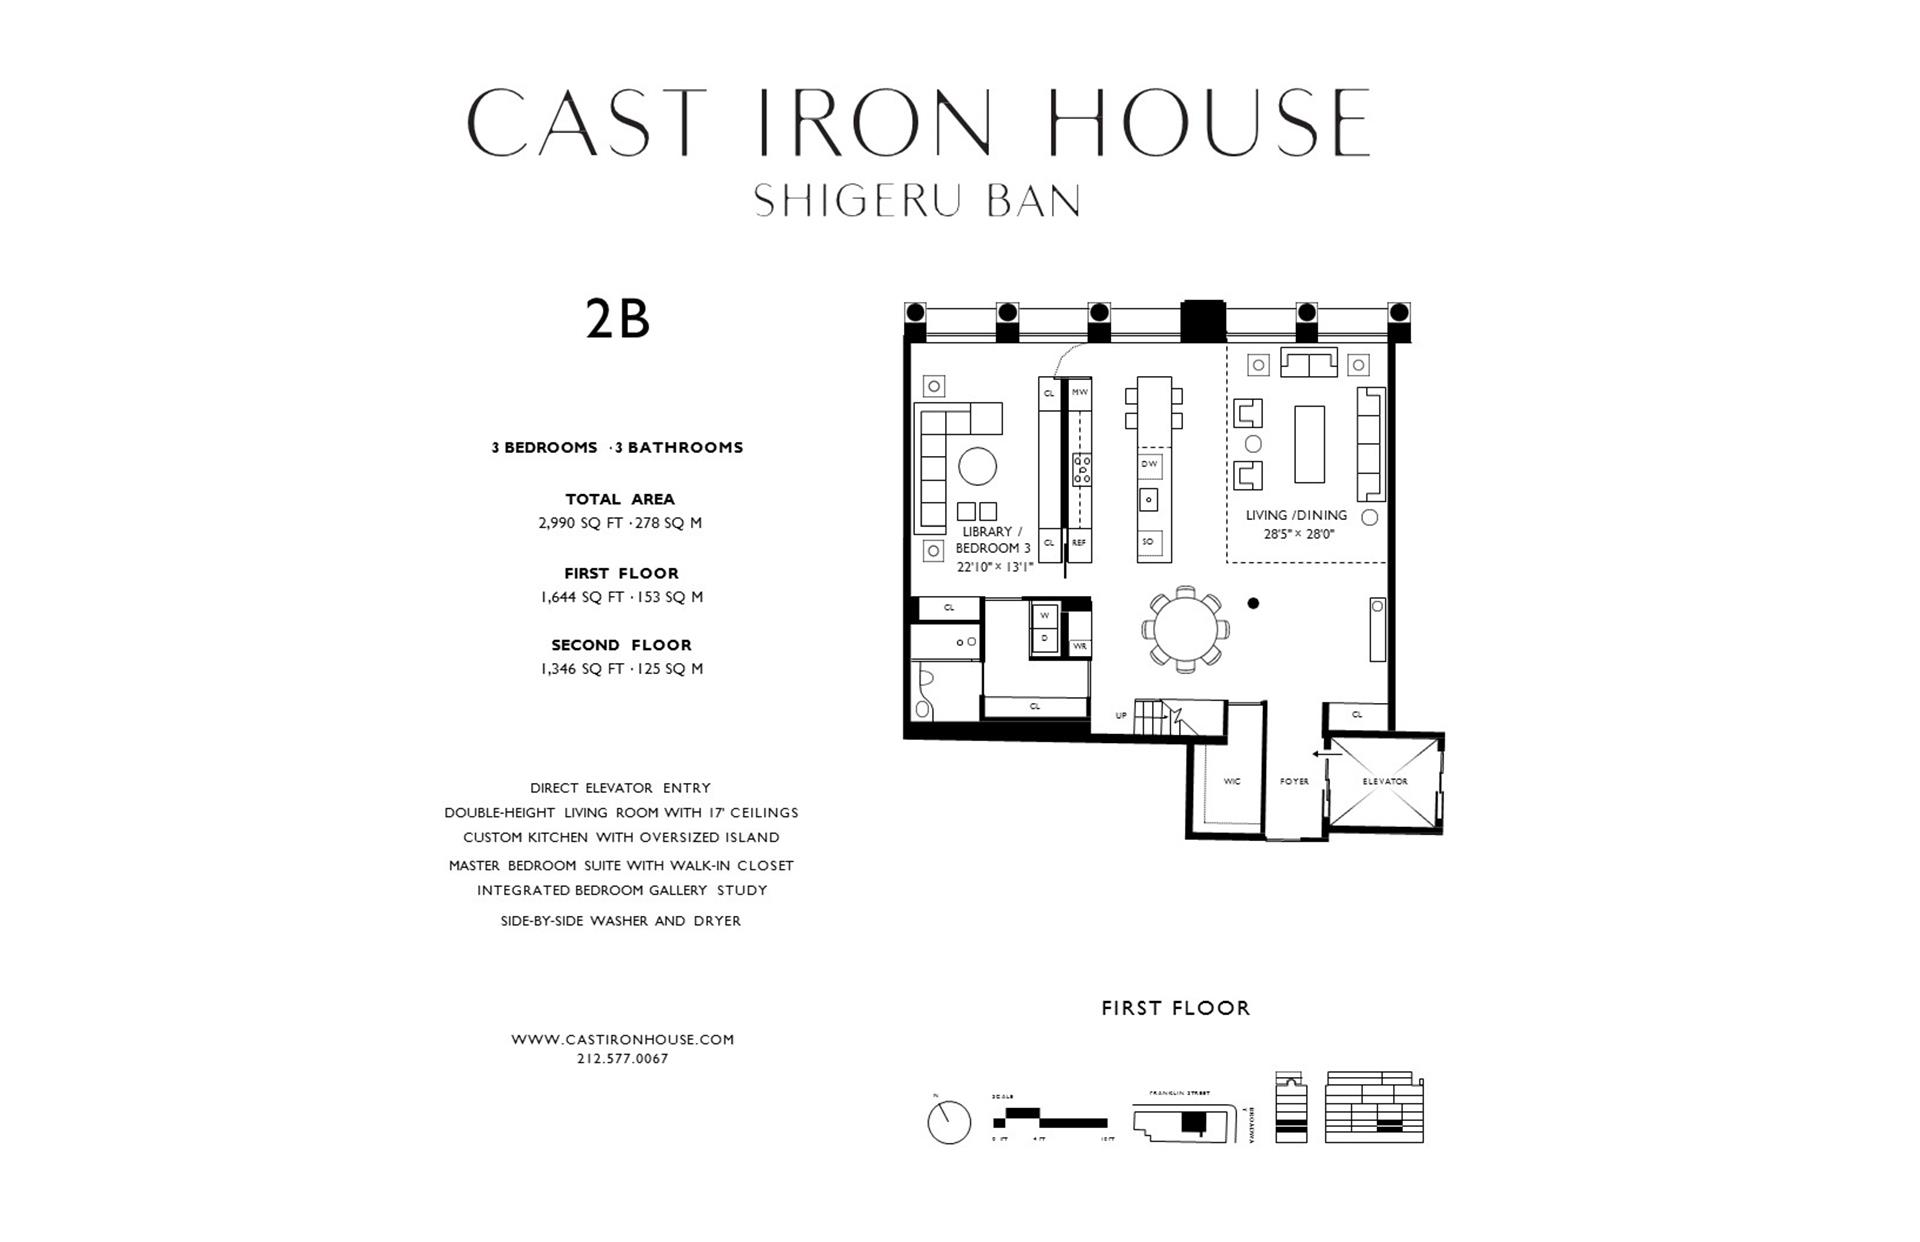 Floor plan of 67 Franklin St, 2B - TriBeCa, New York